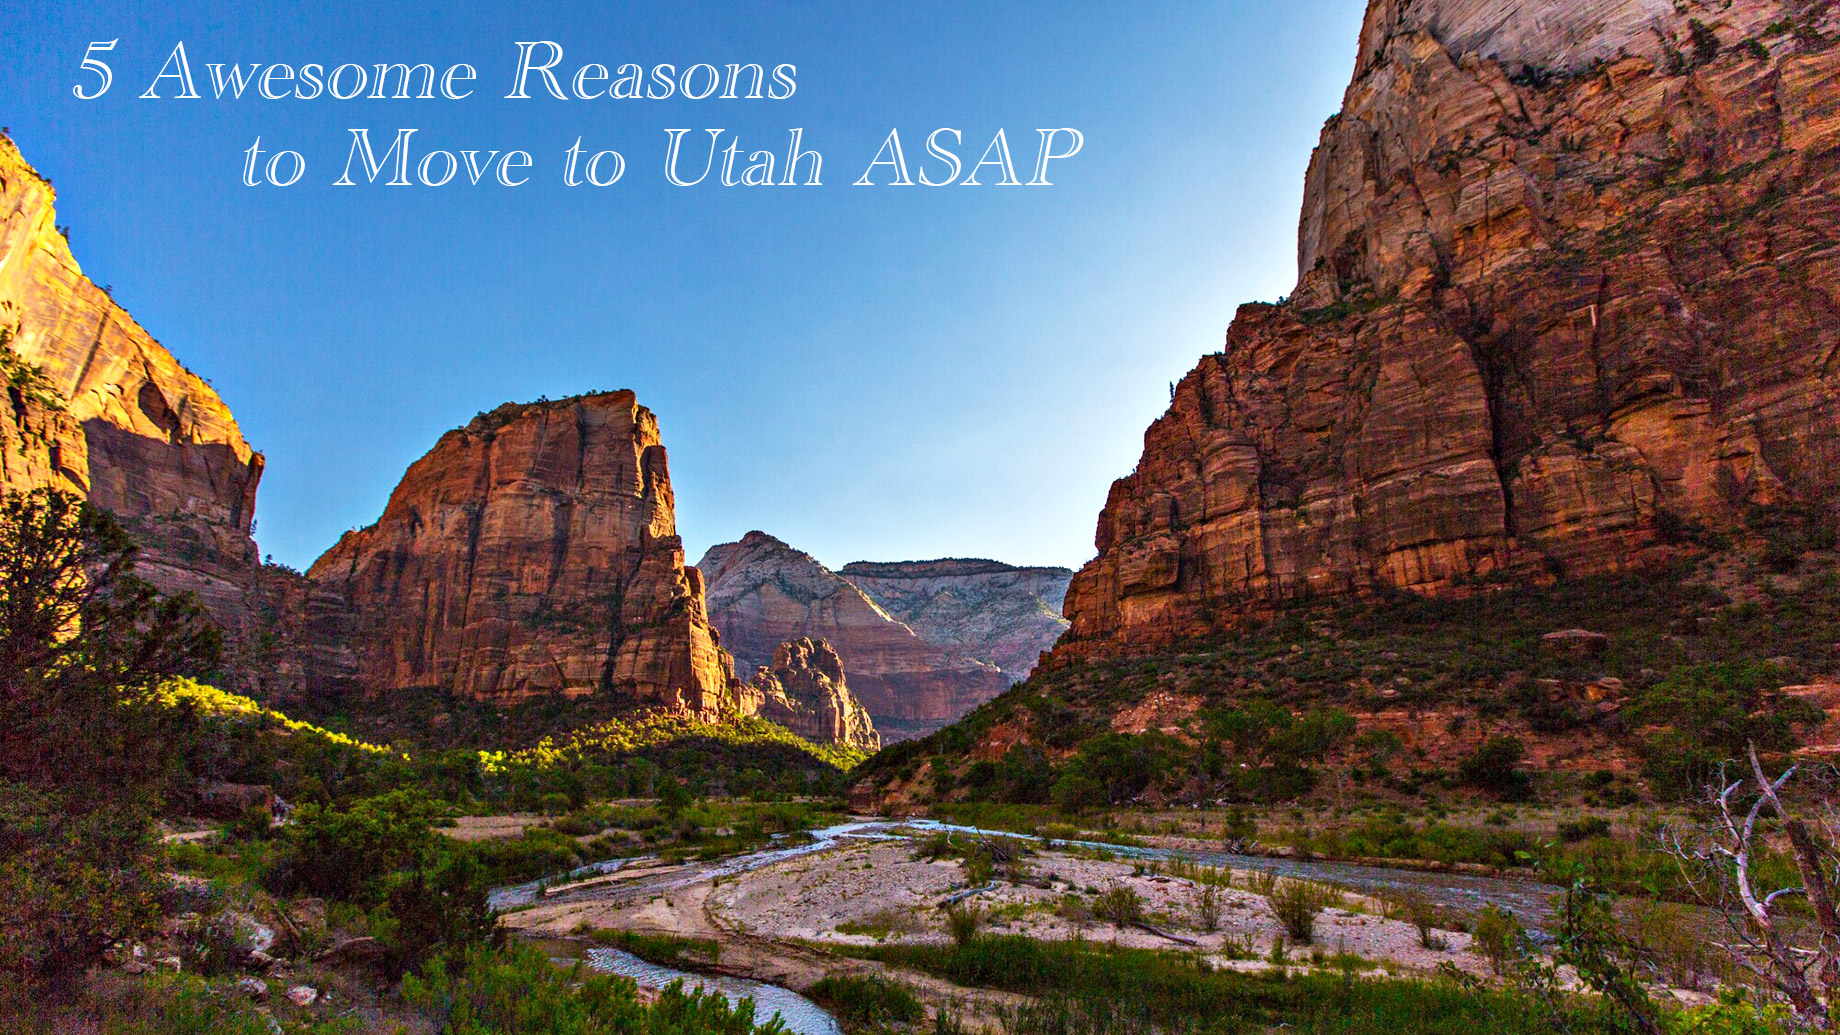 5 Awesome Reasons to Move to Utah ASAP